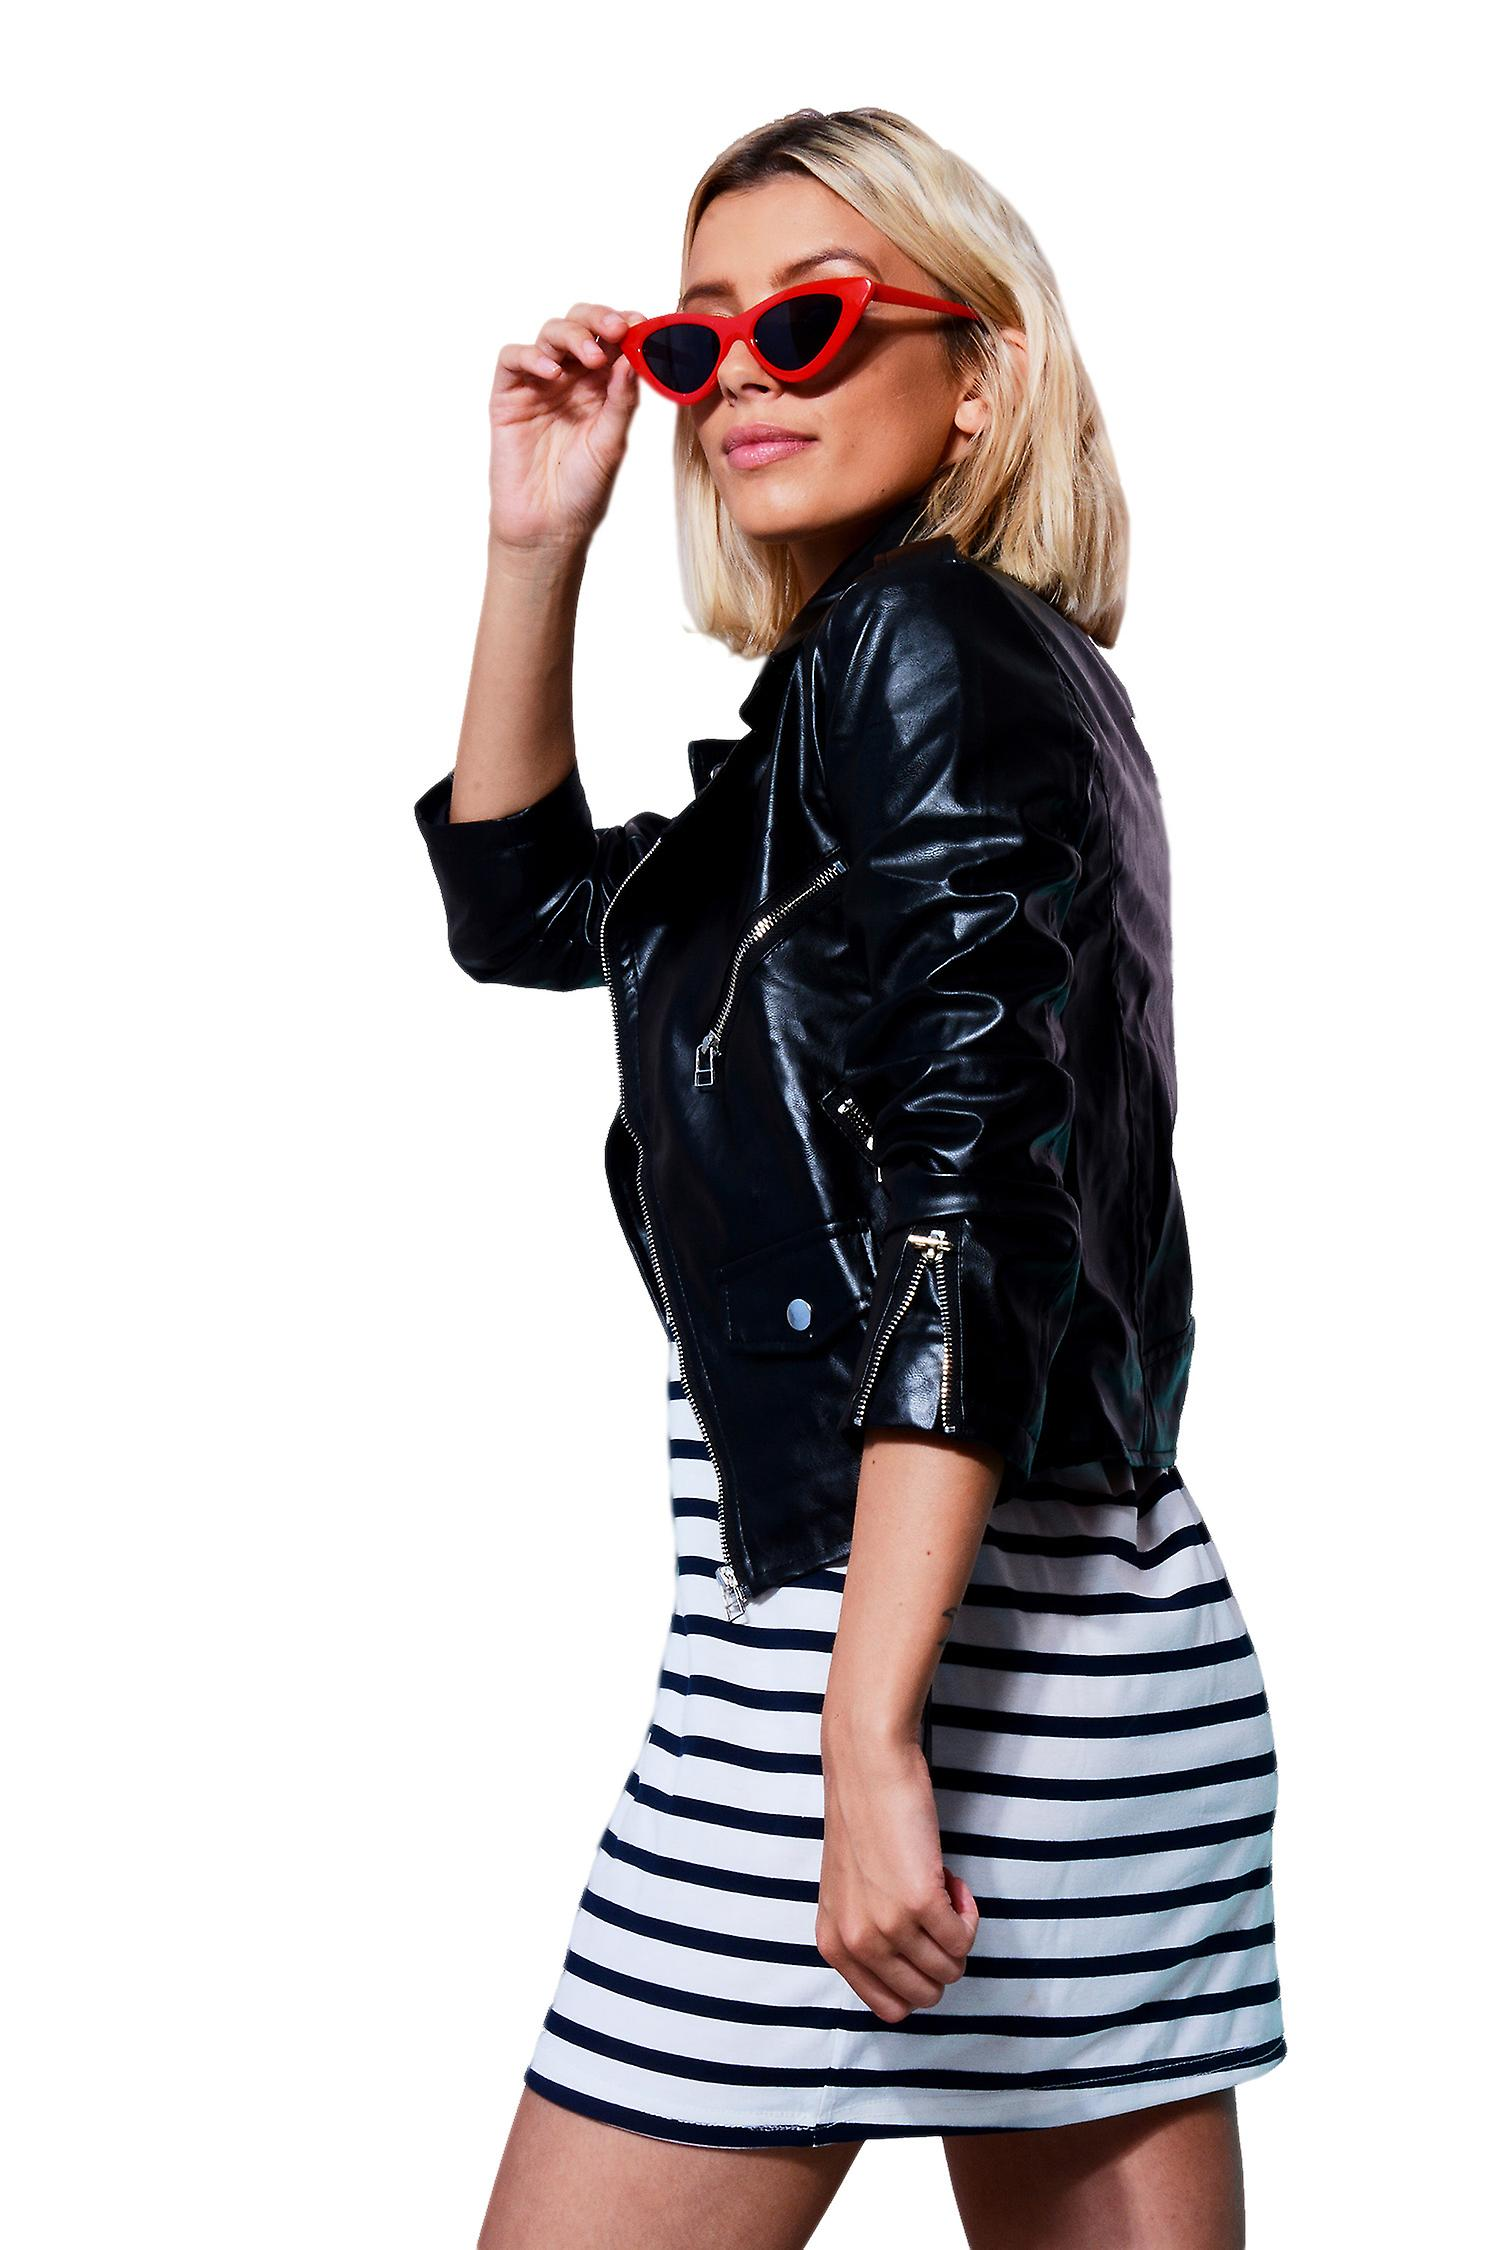 Lovemystyle Classic Black Leather Jacket With Gold Hardware